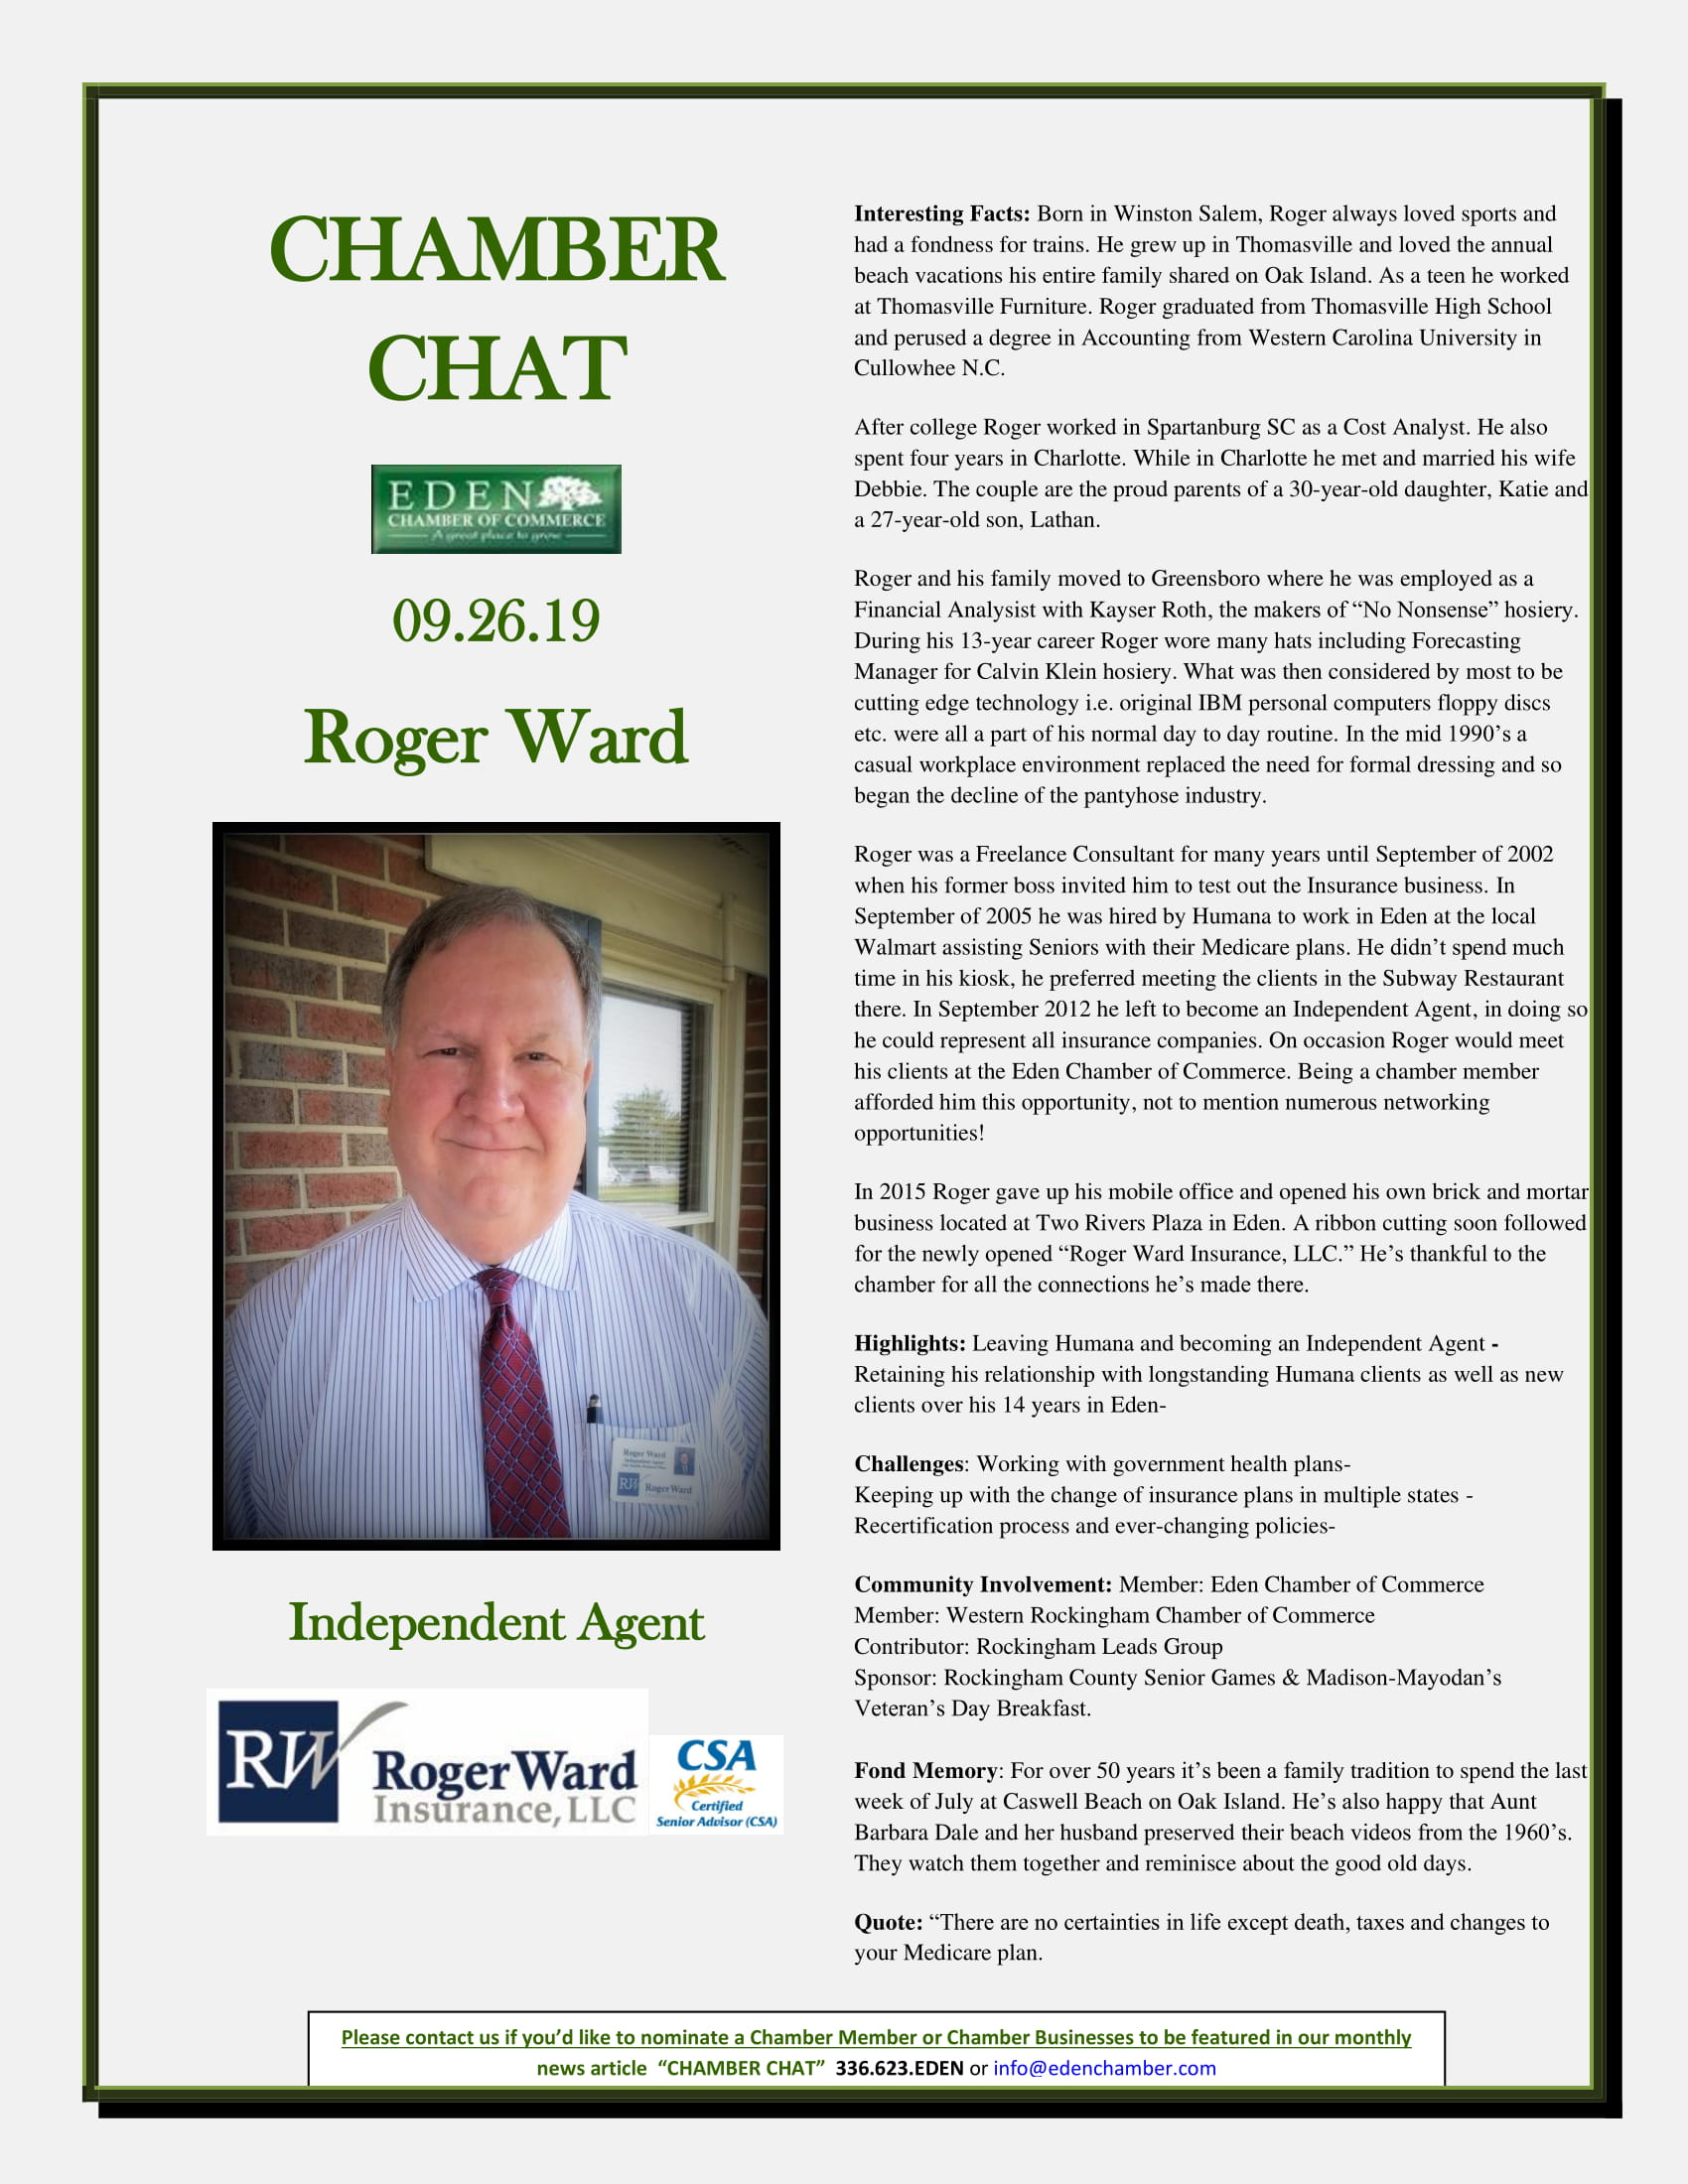 CHAMBER-CHAT-Roger-Ward--Independent-Insurance-Agent-9.26.19-1